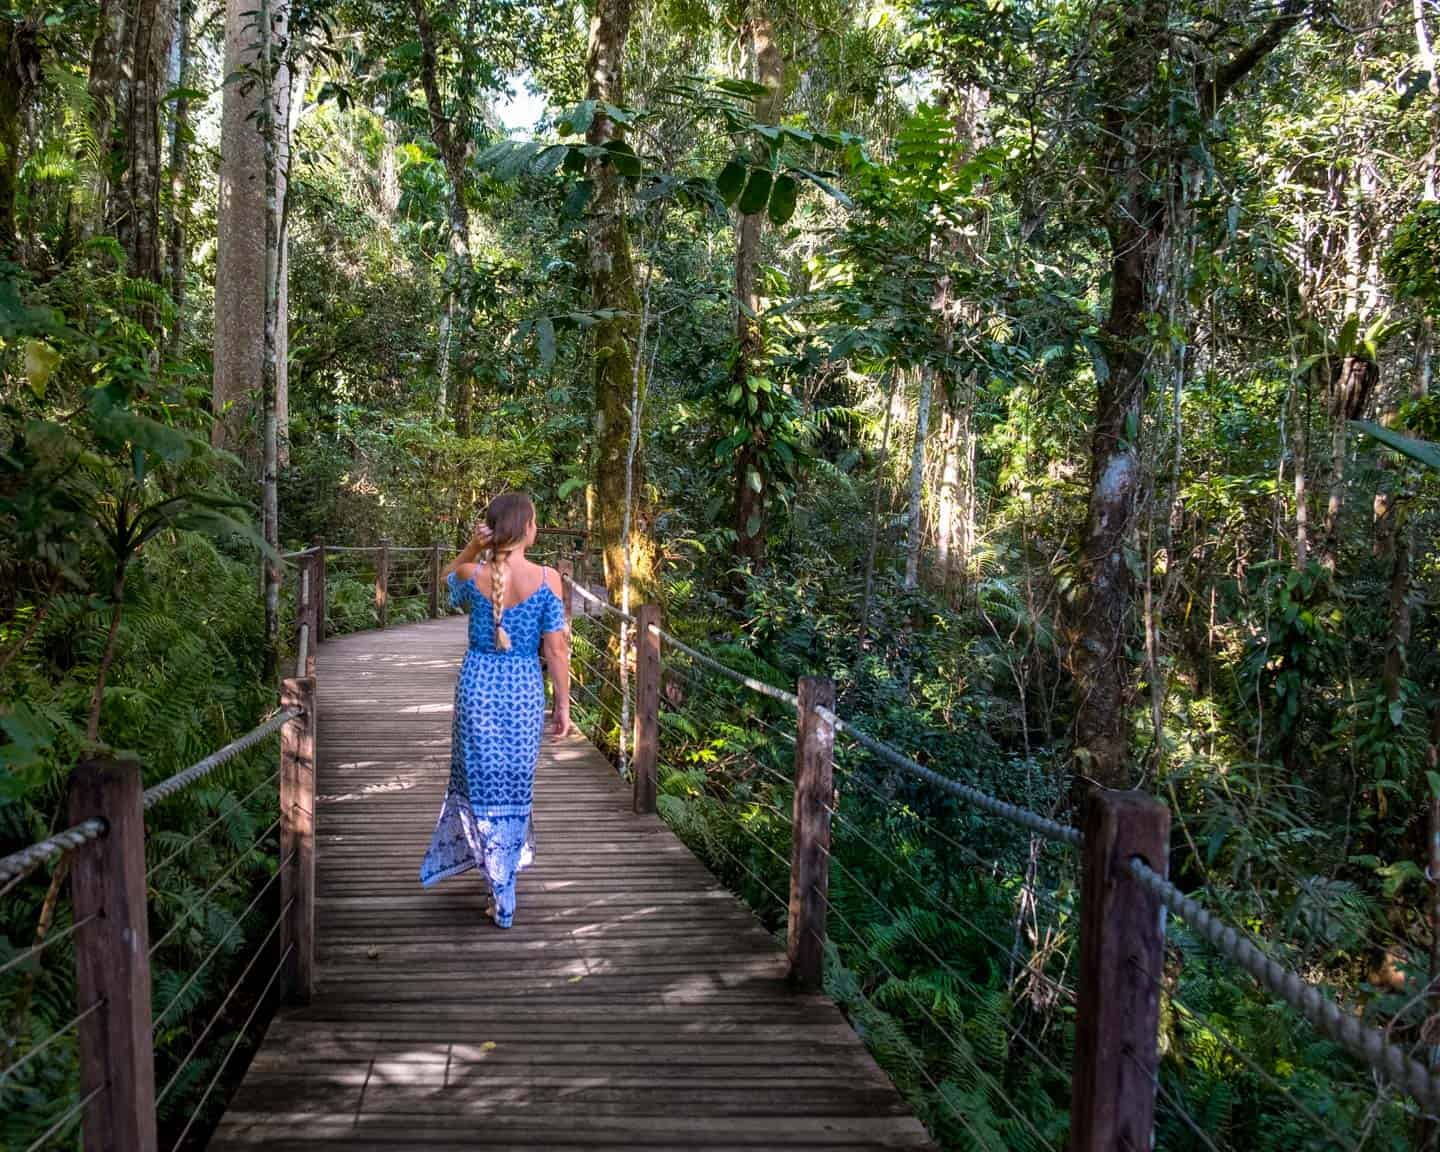 A girl taking a walk along one of the boardwalks in the Daintree Rainforest